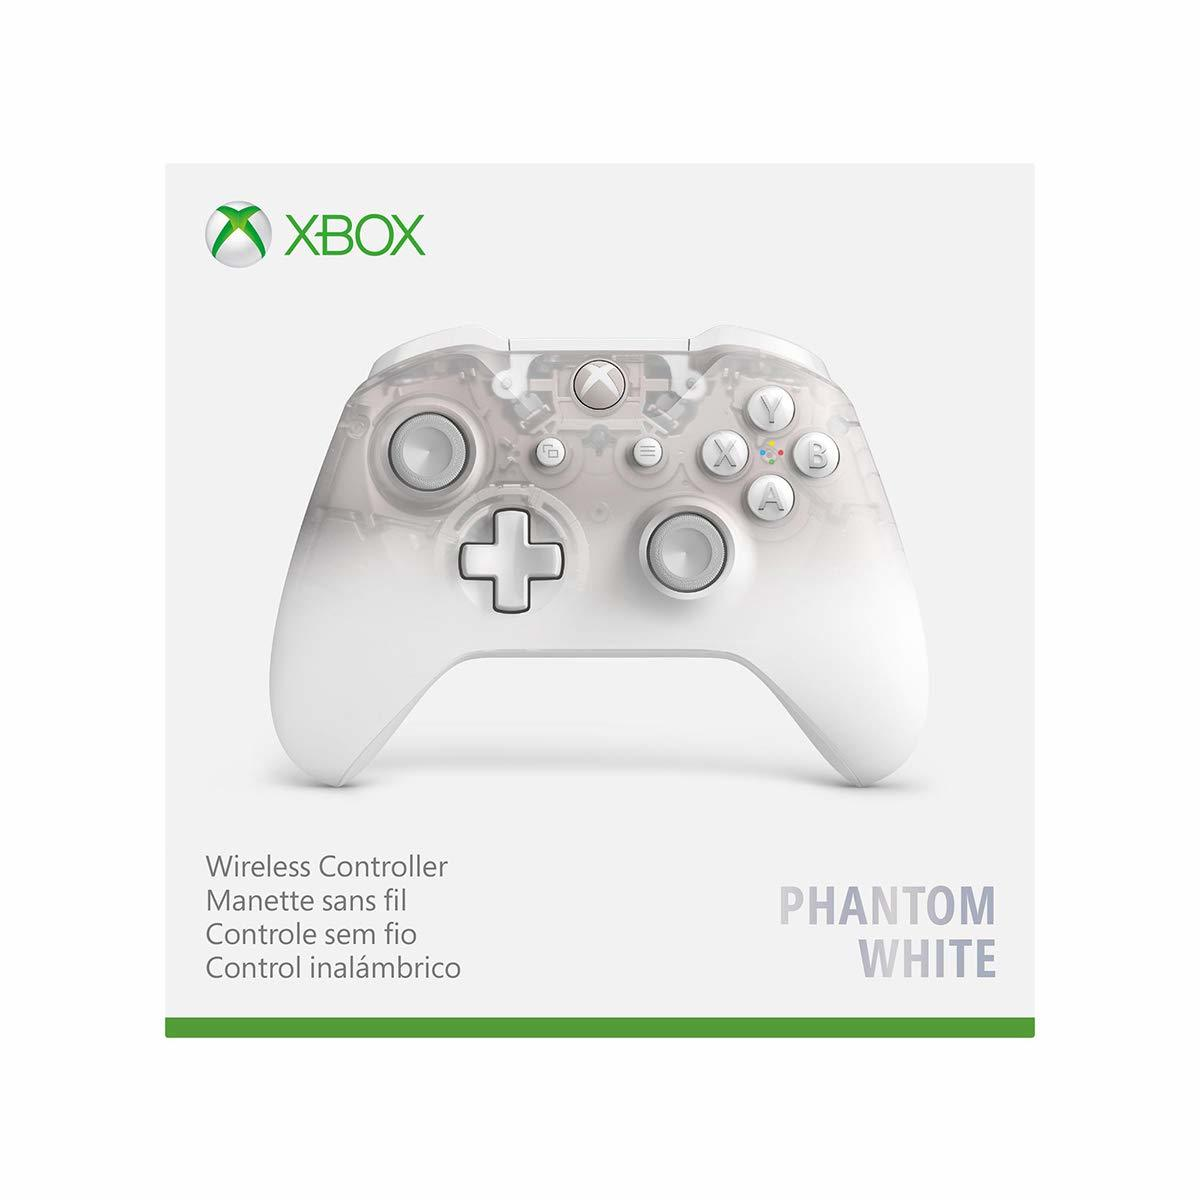 Xbox One Wireless Controller - Phantom White Special Edition screenshot